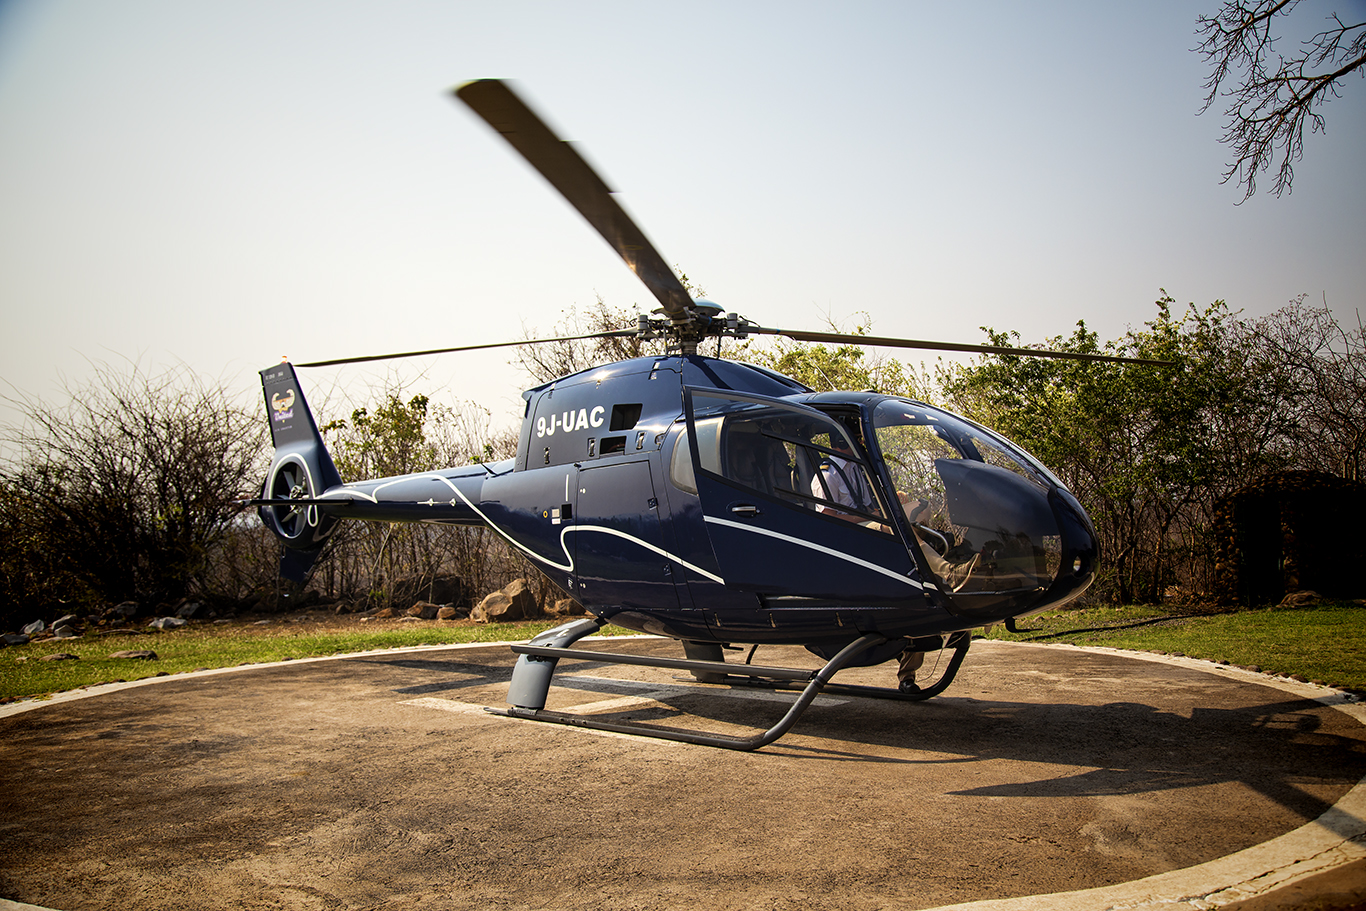 Helicopter for Aerial Views of the Zambian and Zimbabwean Sides of the Victoria Falls